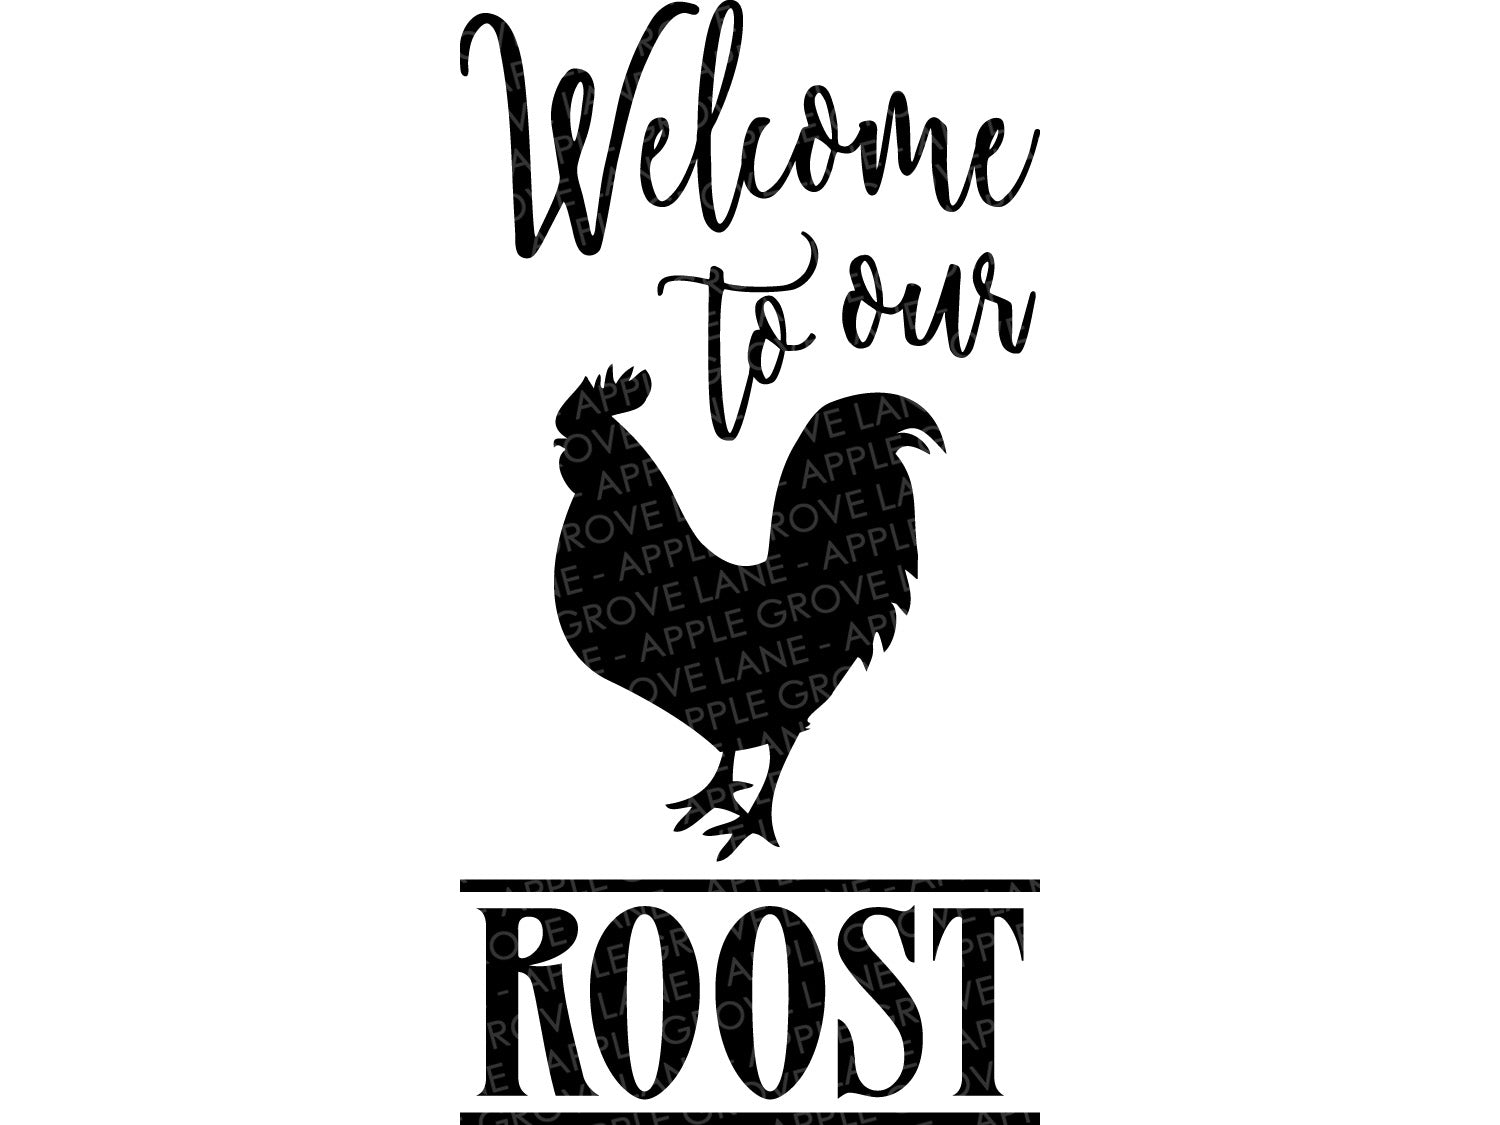 Rooster SVG - Welcome To Our Roost Svg - Welcome Svg - Farm SVG - Farmhouse Svg - Barn SVG - Home Svg - Svg Eps Dxf Png